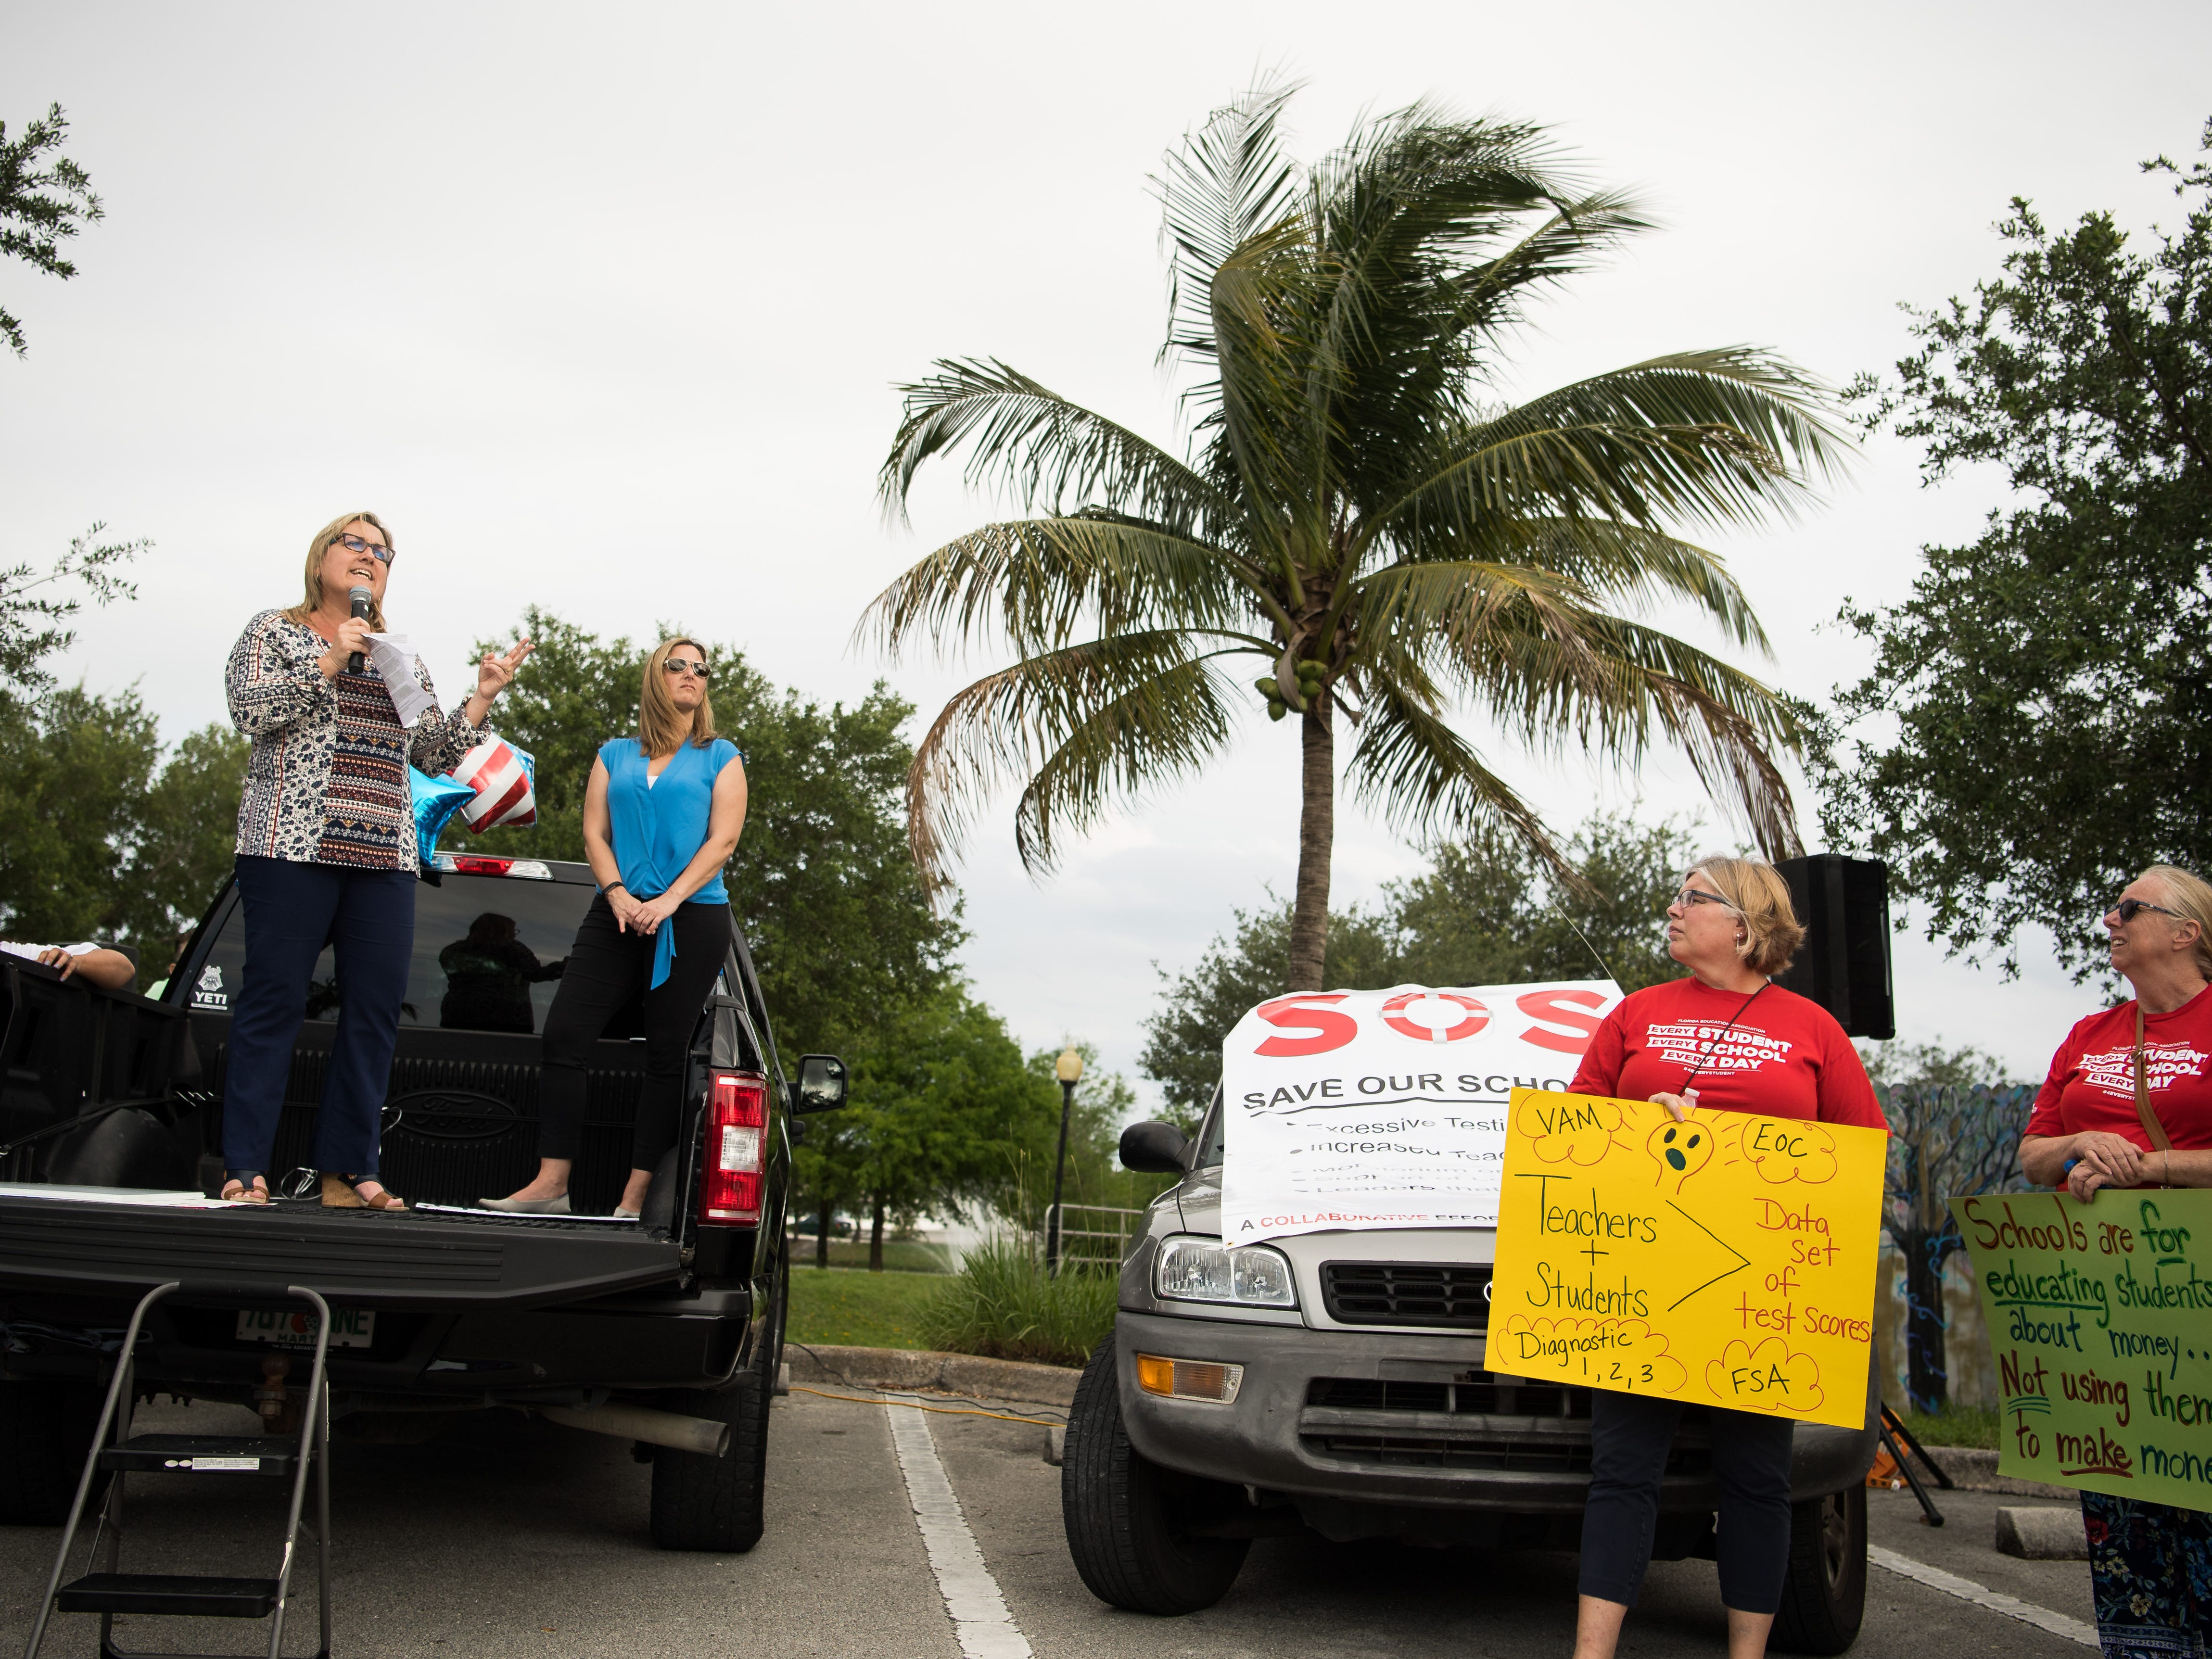 "Stuart resident Tina McSoley (left), a parent and former Martin County School Board member who founded Reconstruct-ED of Stuart, speaks to a crowd of hundreds gathered to march in support of reforms to Florida's public education system Wednesday, May 15, 2019, in Stuart. ""This is the beginning of an eight-month program to educate Florida on education,"" she said. ""There's a lot of work to be done statewide, and I believe most of our issues come from mandates from Tallahassee,"" she added, ""and until we get Tallahassee's attention, our hands are tied locally."" The event was promoted on the Facebook group page ""Reconstruct-ED: A Message to Governor DeSantis,"" which lists over-testing and low teacher pay among its concerns."